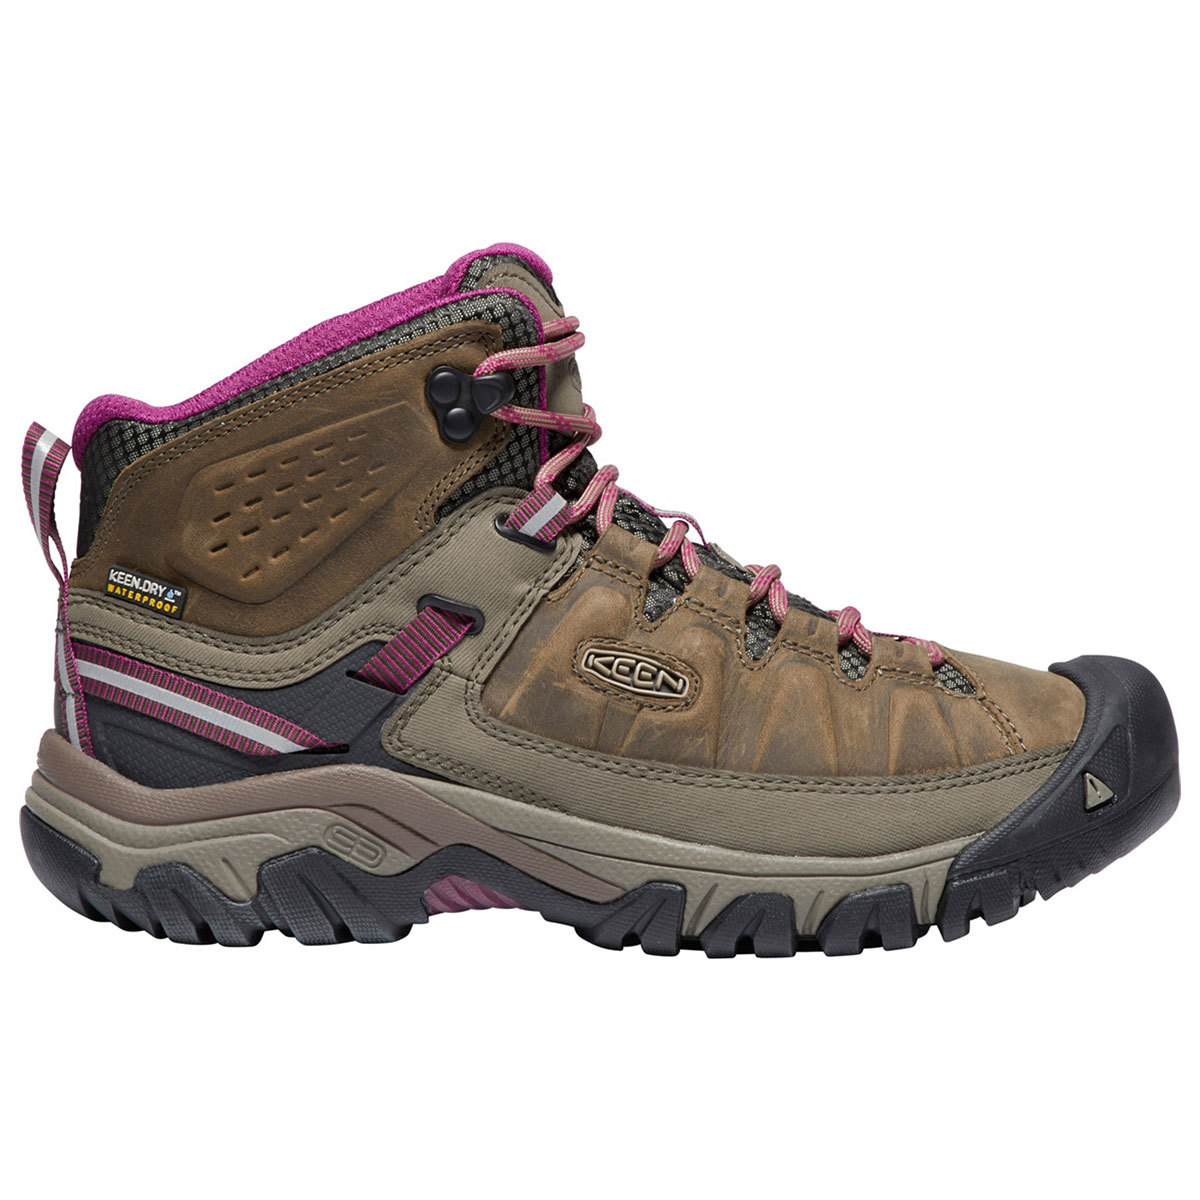 Keen Women's Targhee Iii Waterproof Mid Hiking Boots - Brown, 8.5